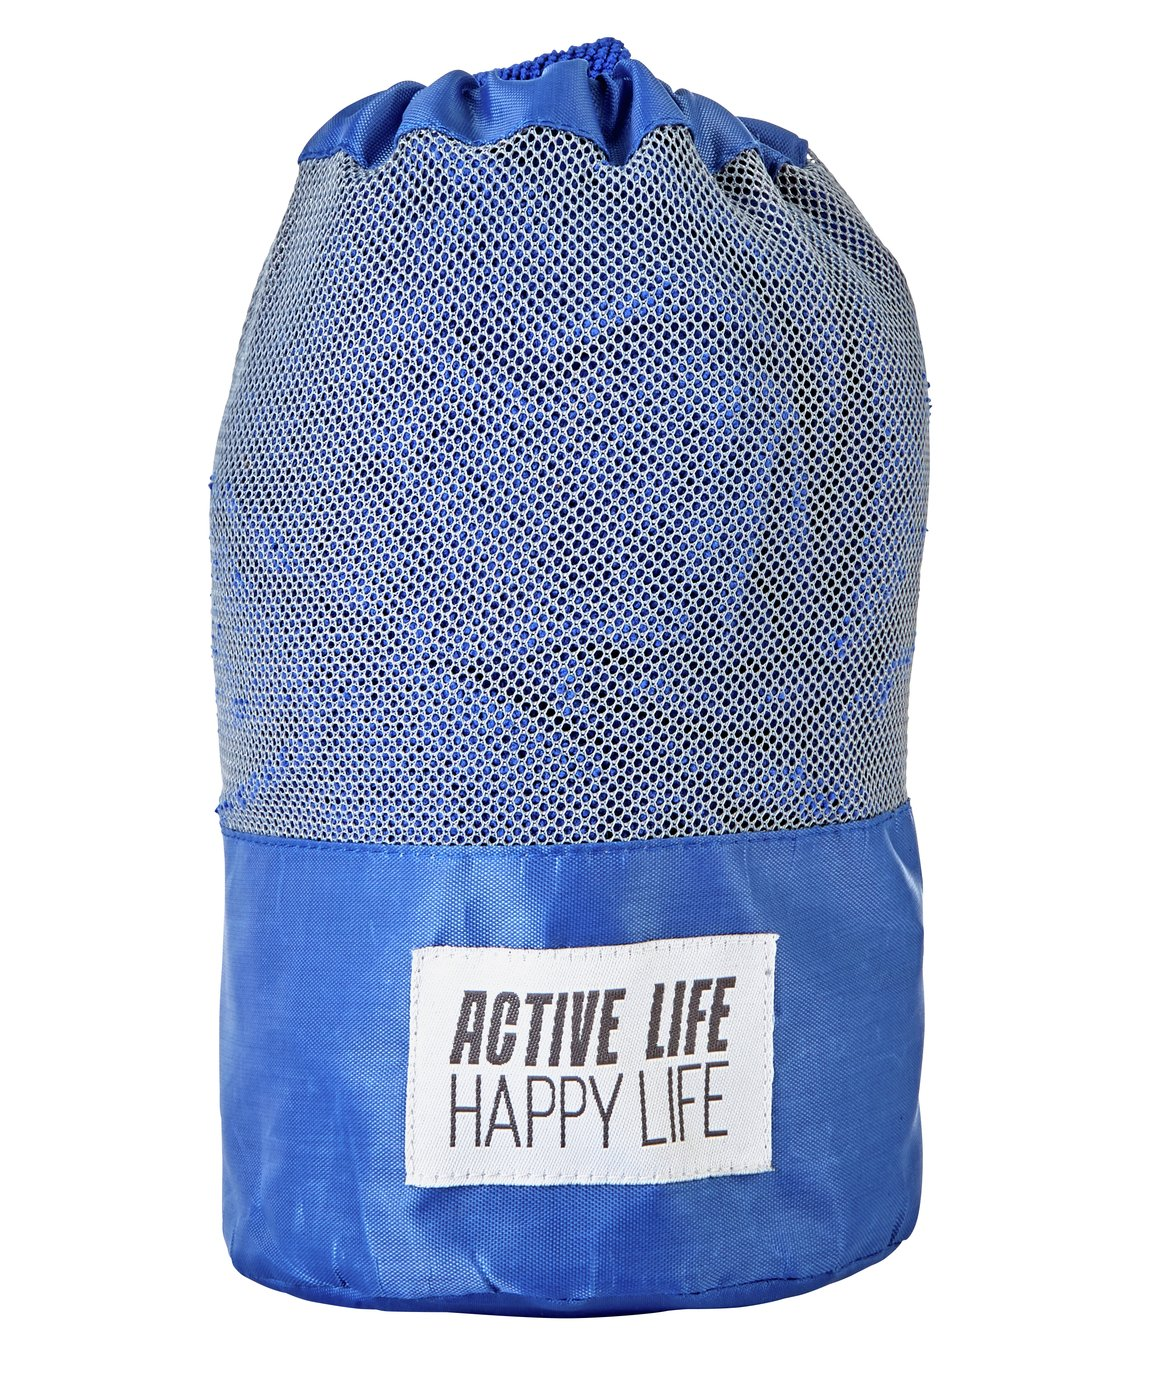 Active Life Happy Life Sports Towel - Blue